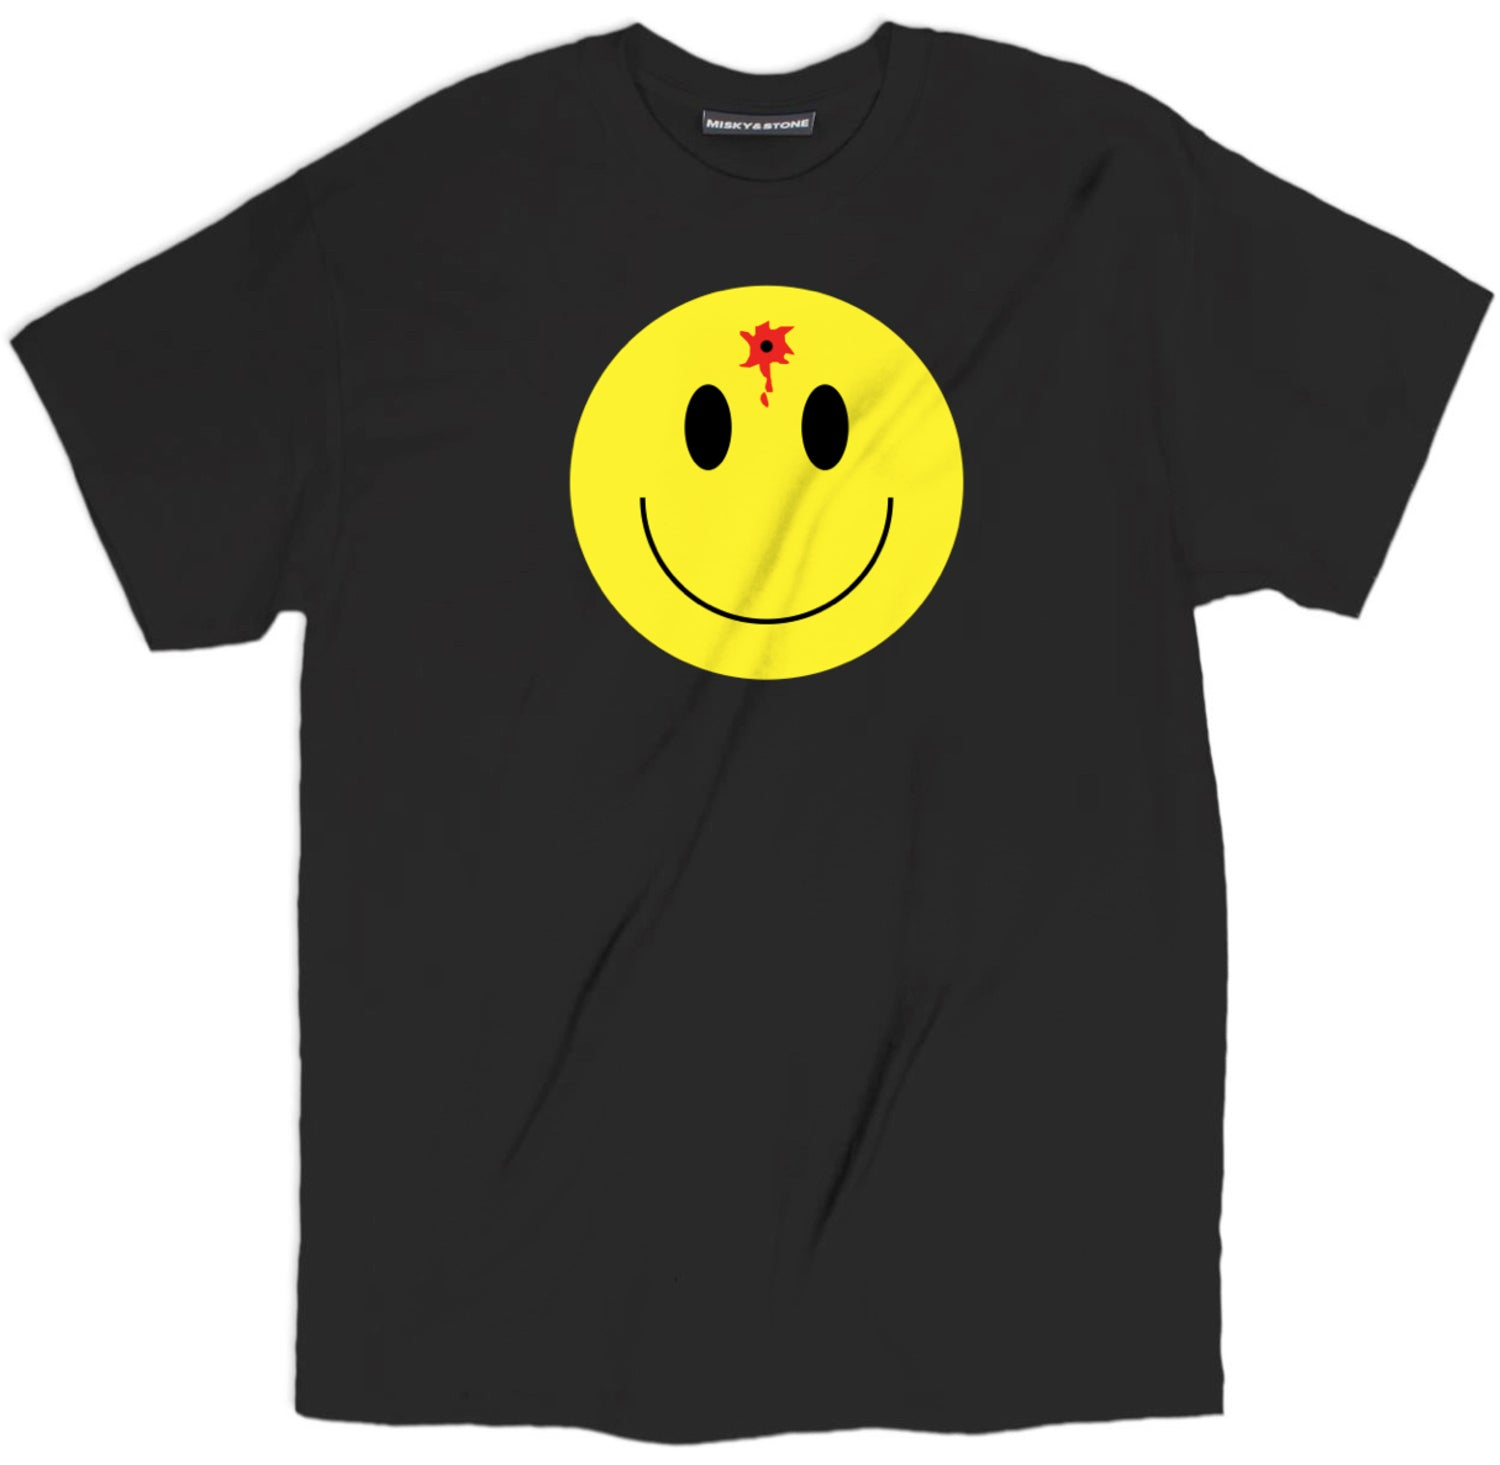 smiley bullet hole shirt, smiley face t shirt, rave shirts, rave t shirts, funny rave shirts,